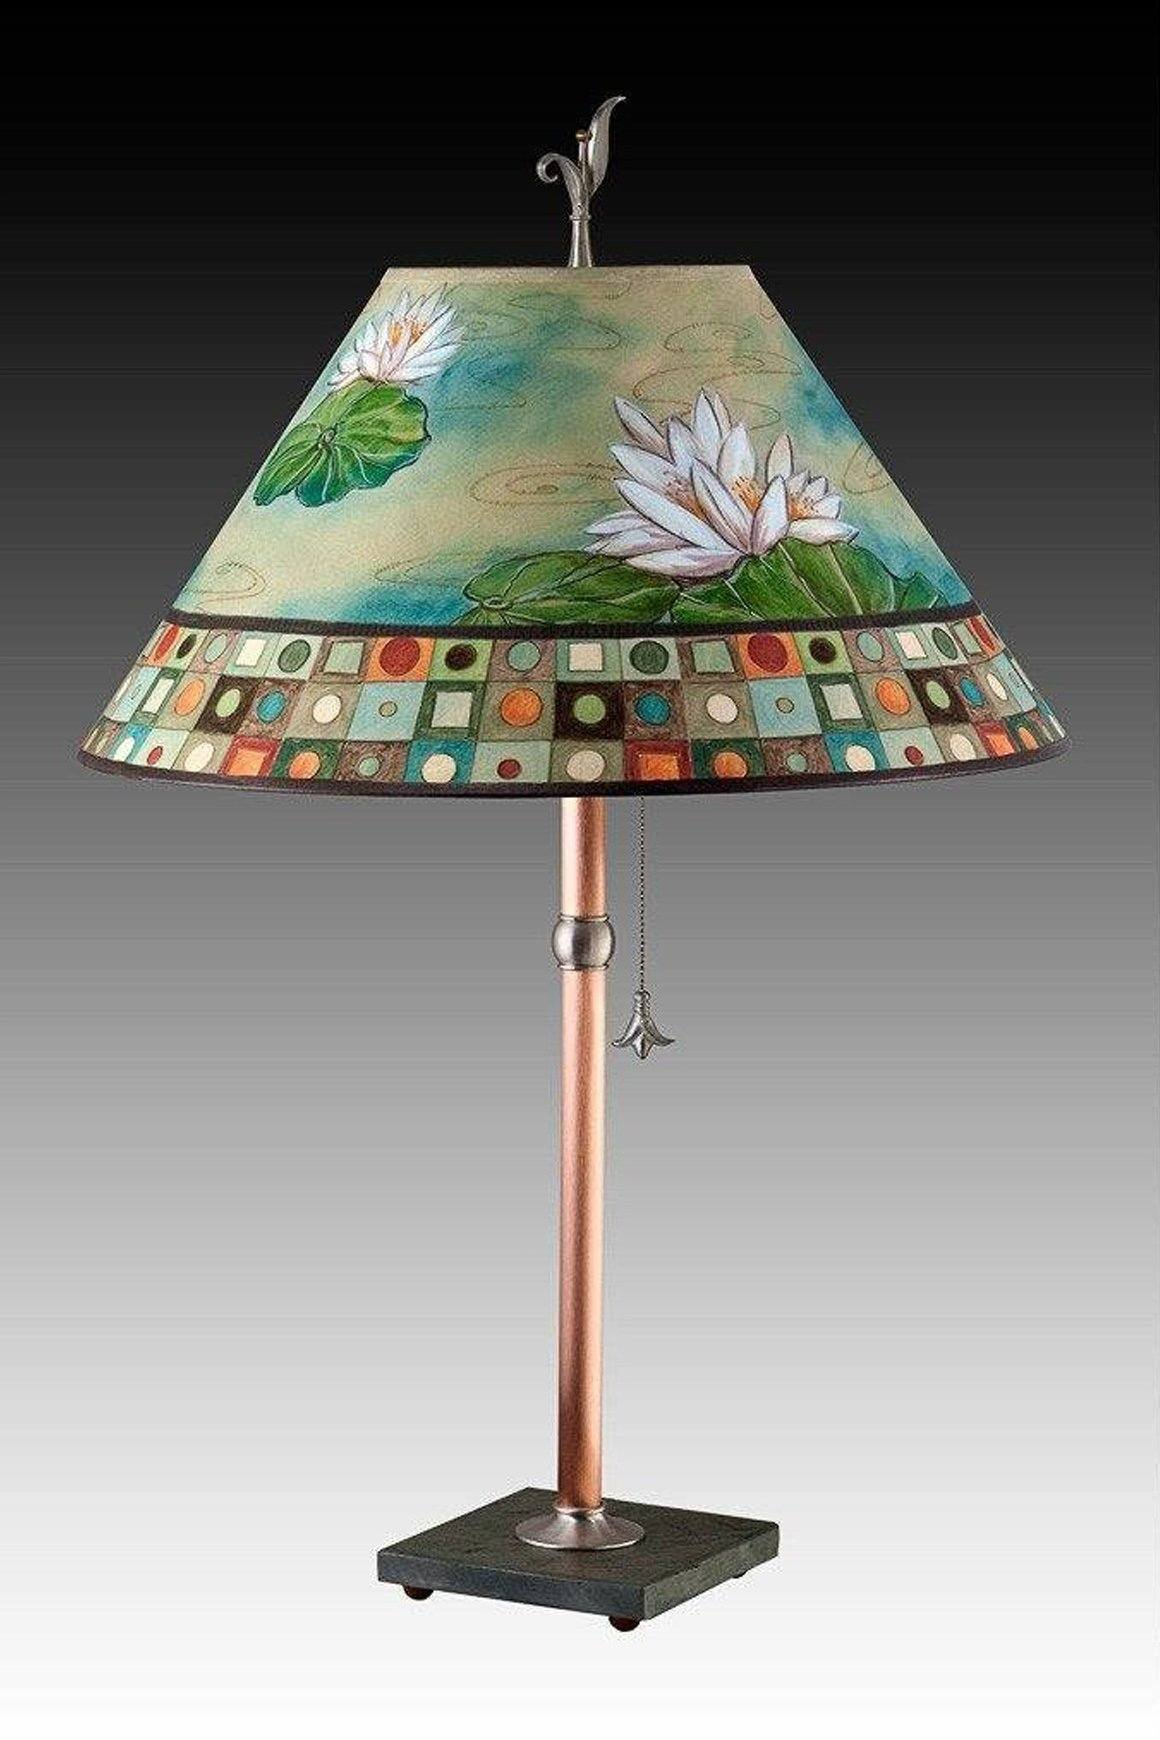 Copper Table Lamp on Vermont Slate with Large Conical Shade in Water Lily Mosaic